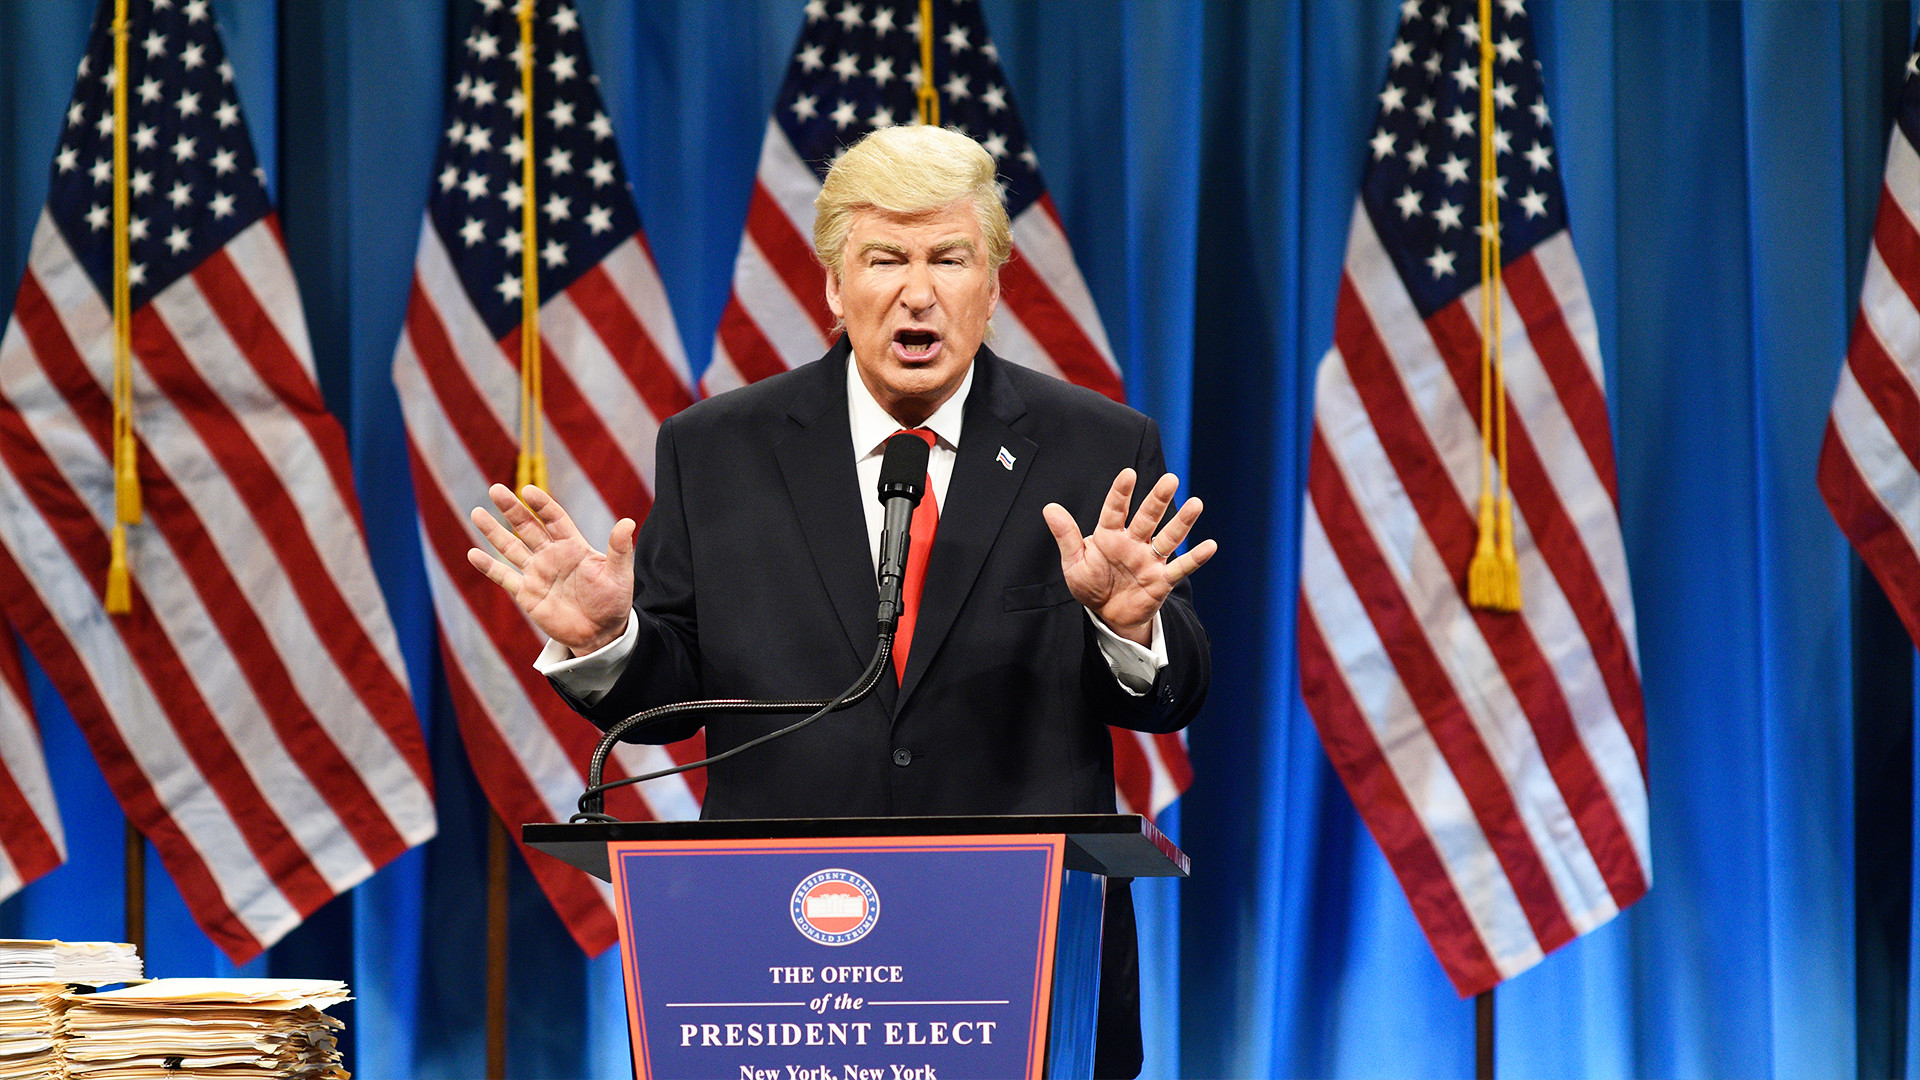 Dominican Newspaper Apologizes After Mistaking Photo of Alec Baldwin for Donald  Trump